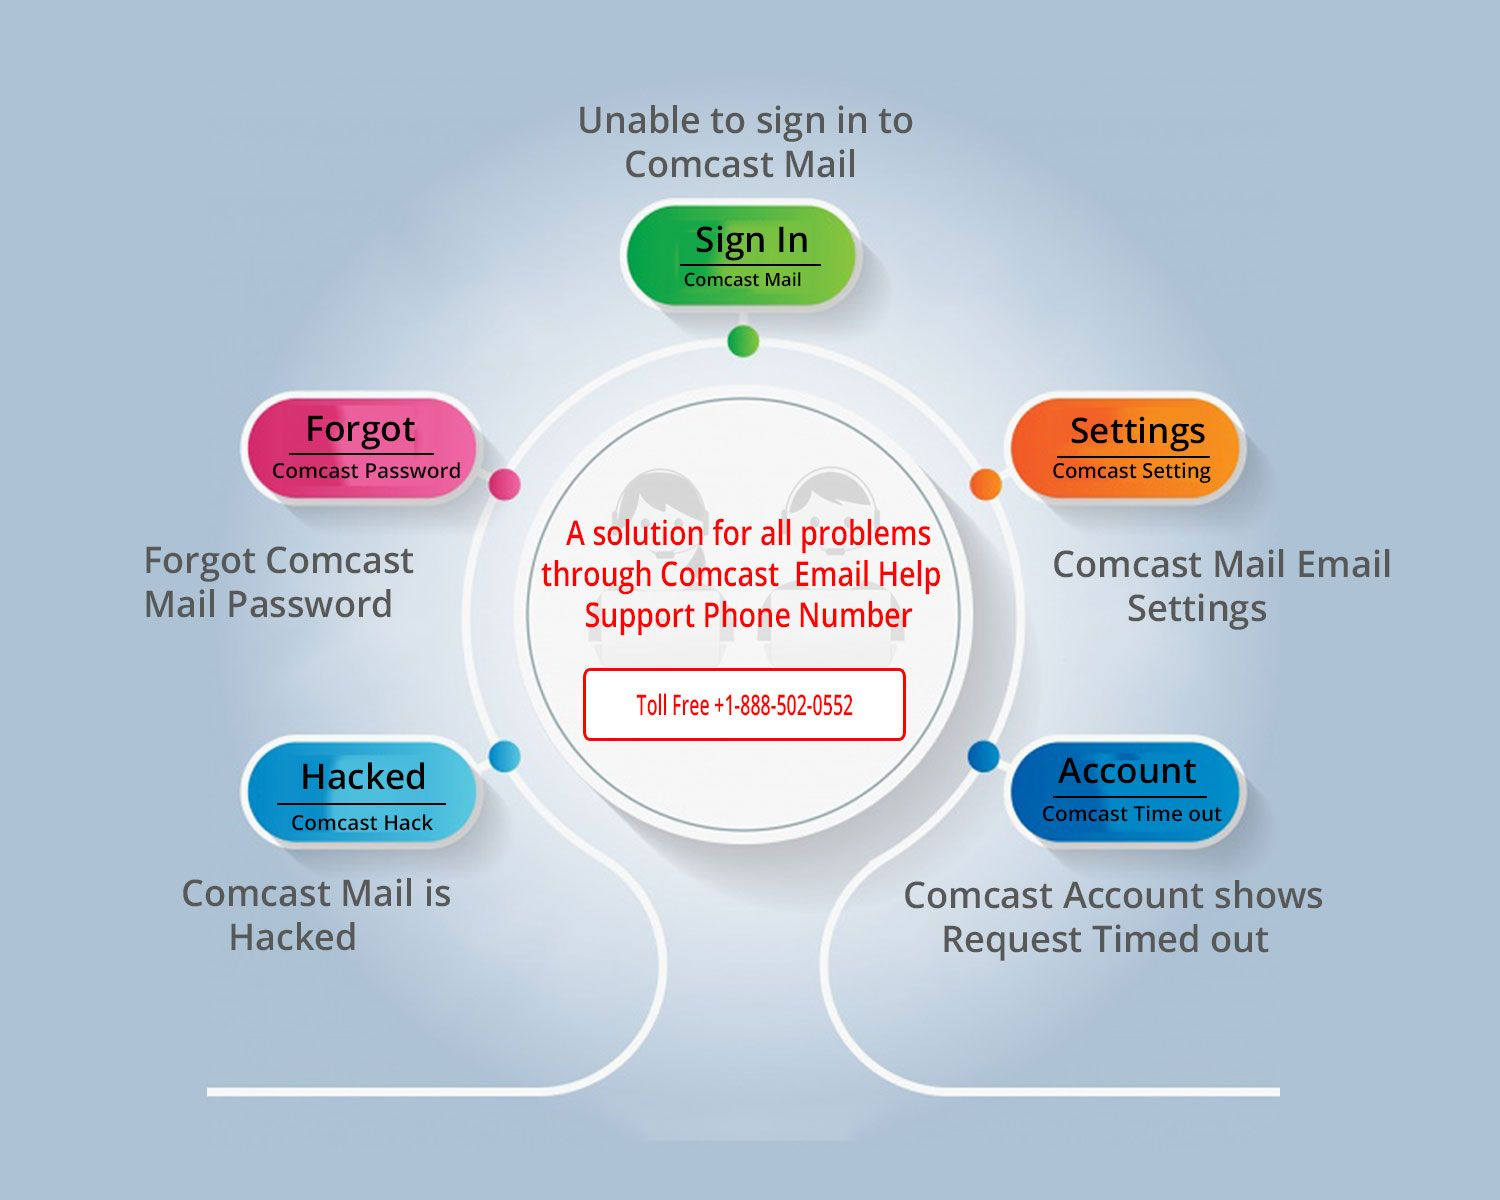 Pin by cgimart on HelpDesk Comcast xfinity, Mail sign